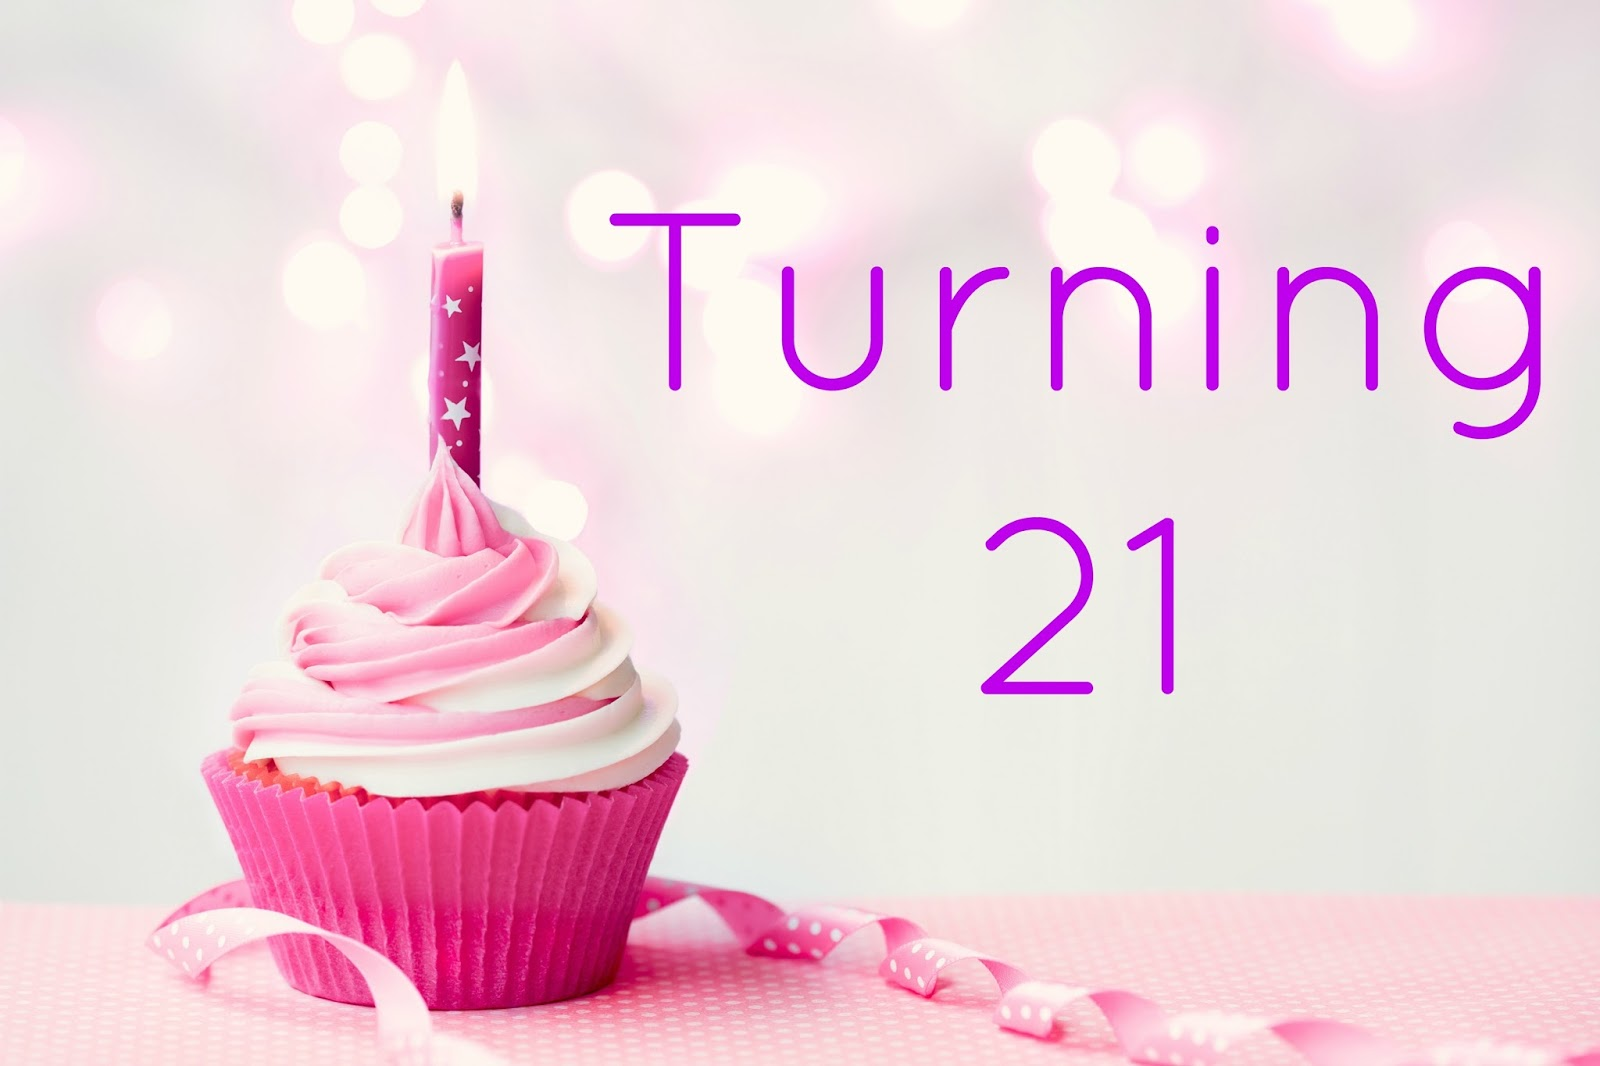 Download 3d Moving Wallpapers For Windows 7 Download 21st Birthday Wallpaper Gallery